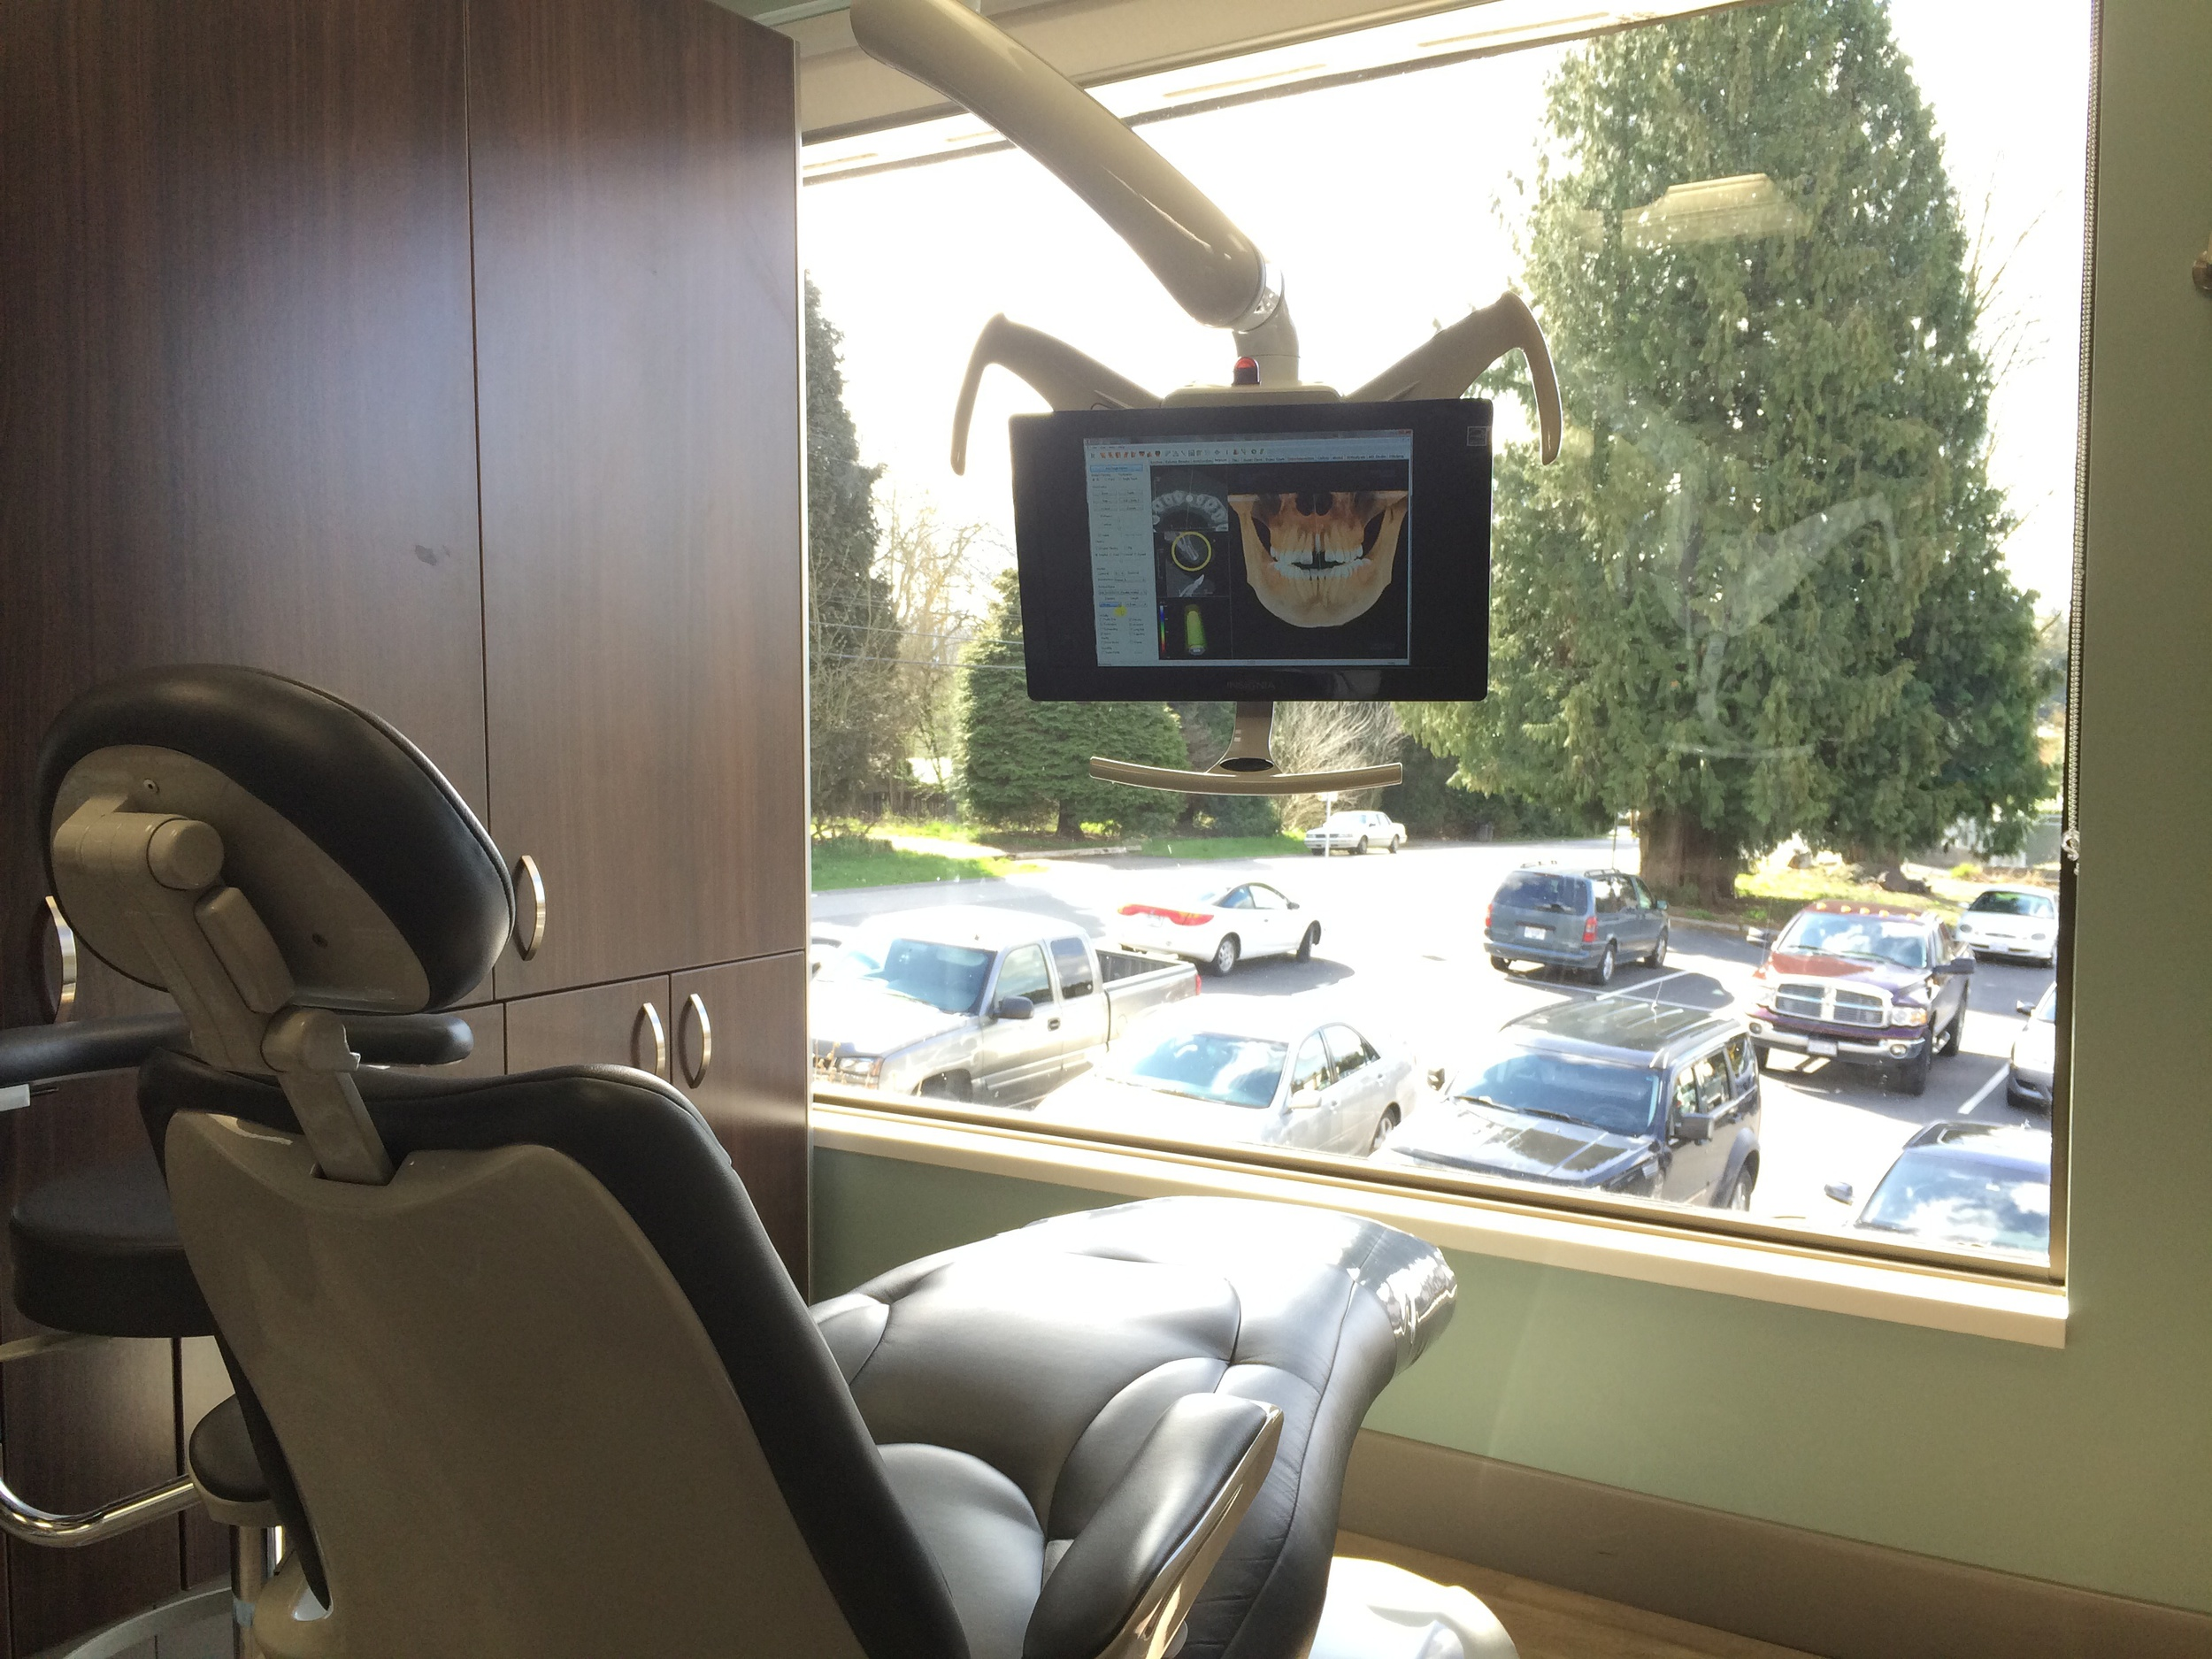 Our newly renovated, state-of-the-art facility has massaging chairs and tv's in every room.